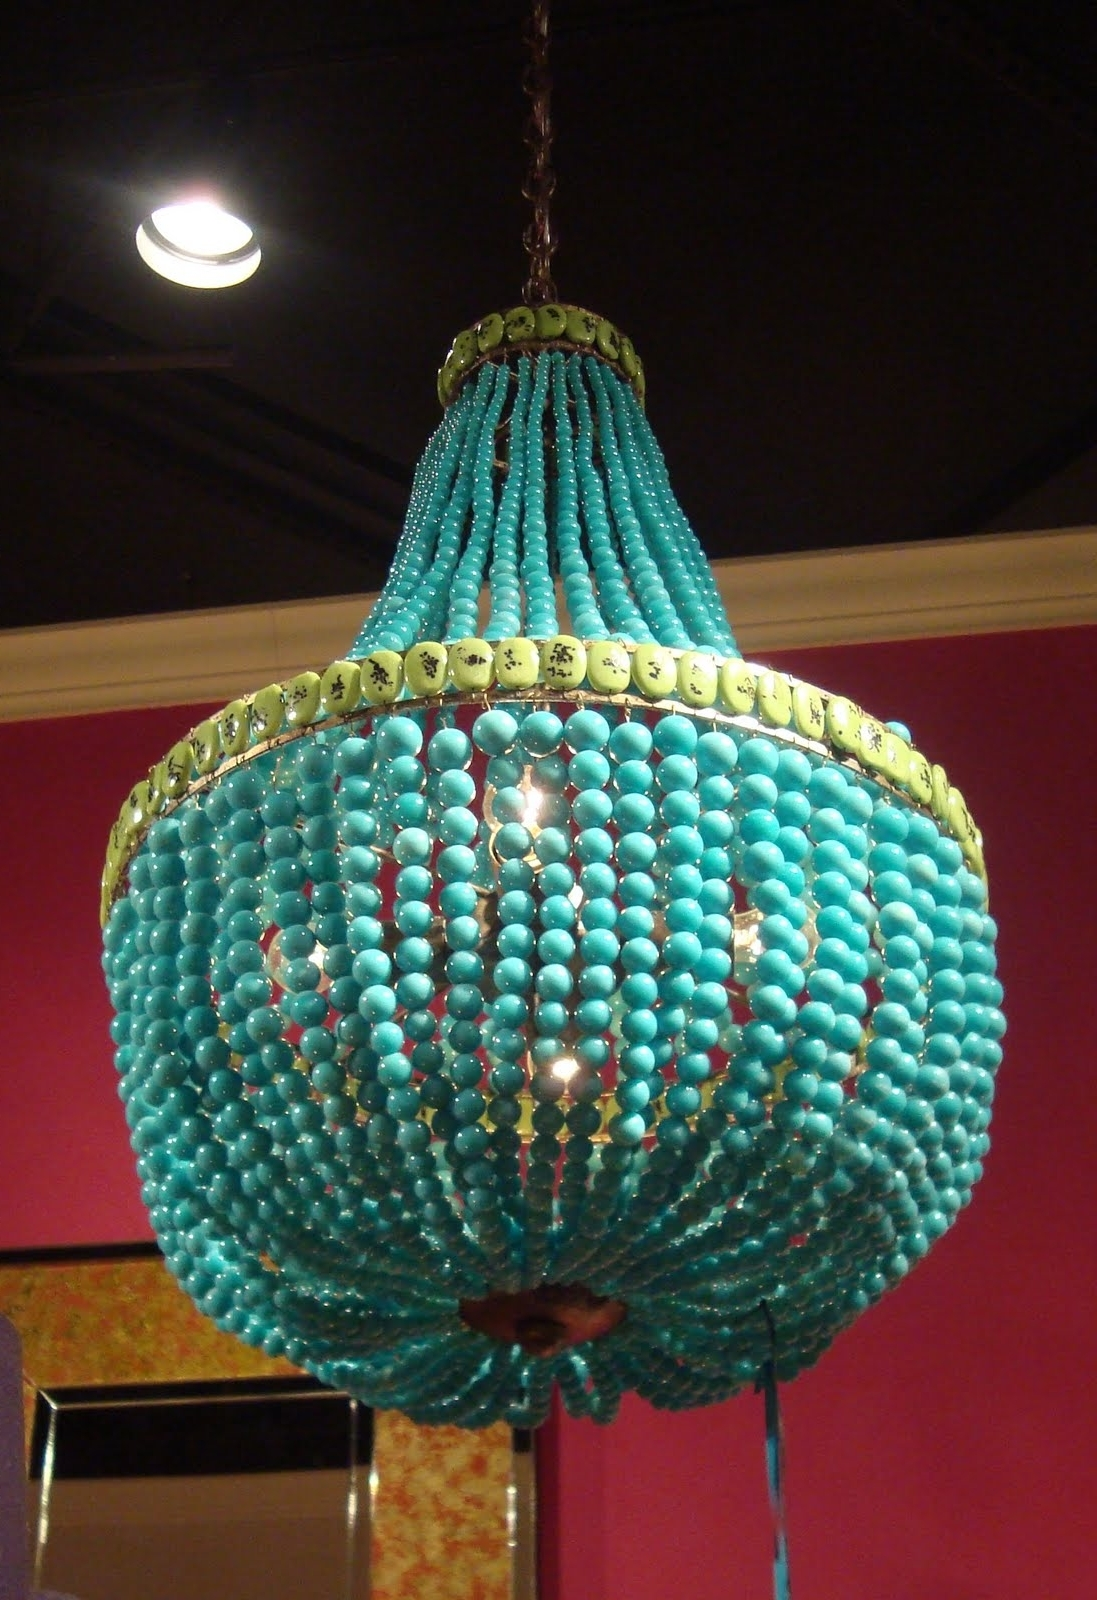 Turquoise Beads Six Light Chandeliers With Regard To Recent Turquoise Chandelier Lighting (View 14 of 20)